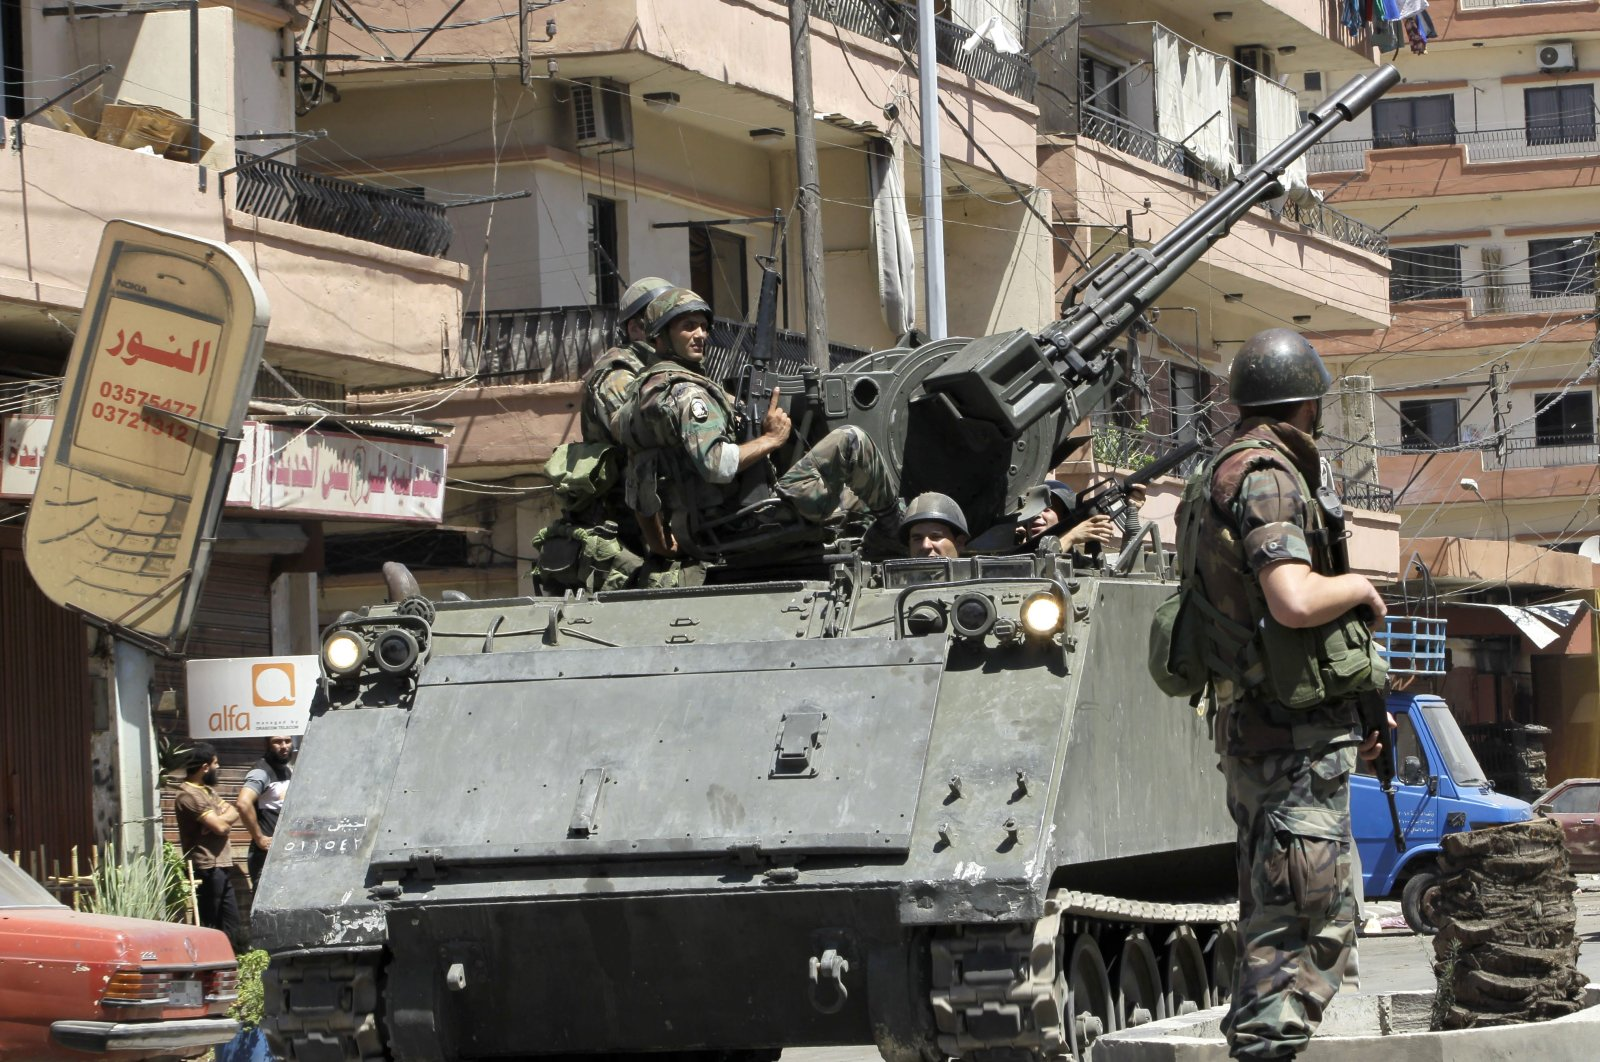 Lebanese army soldiers patrol after days of clashes between pro and anti-Syrian regime groups, in the northern city of Tripoli, Lebanon, Aug. 23, 2012. (AP Photo)